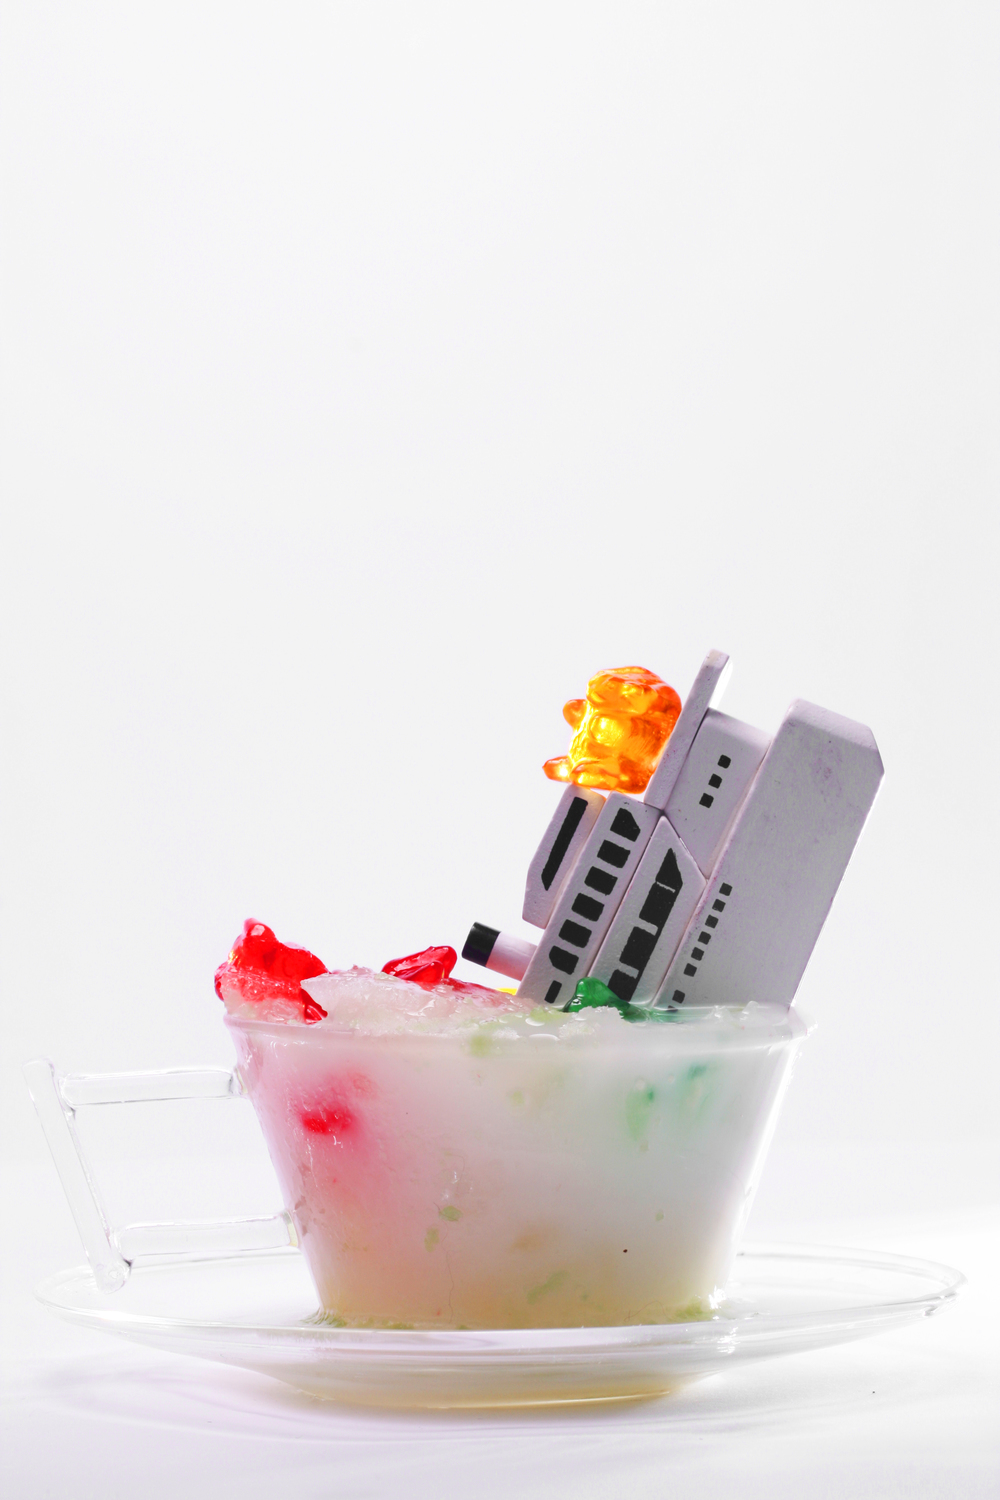 Cindy Lin Prop and Food Styling Work 3.jpg